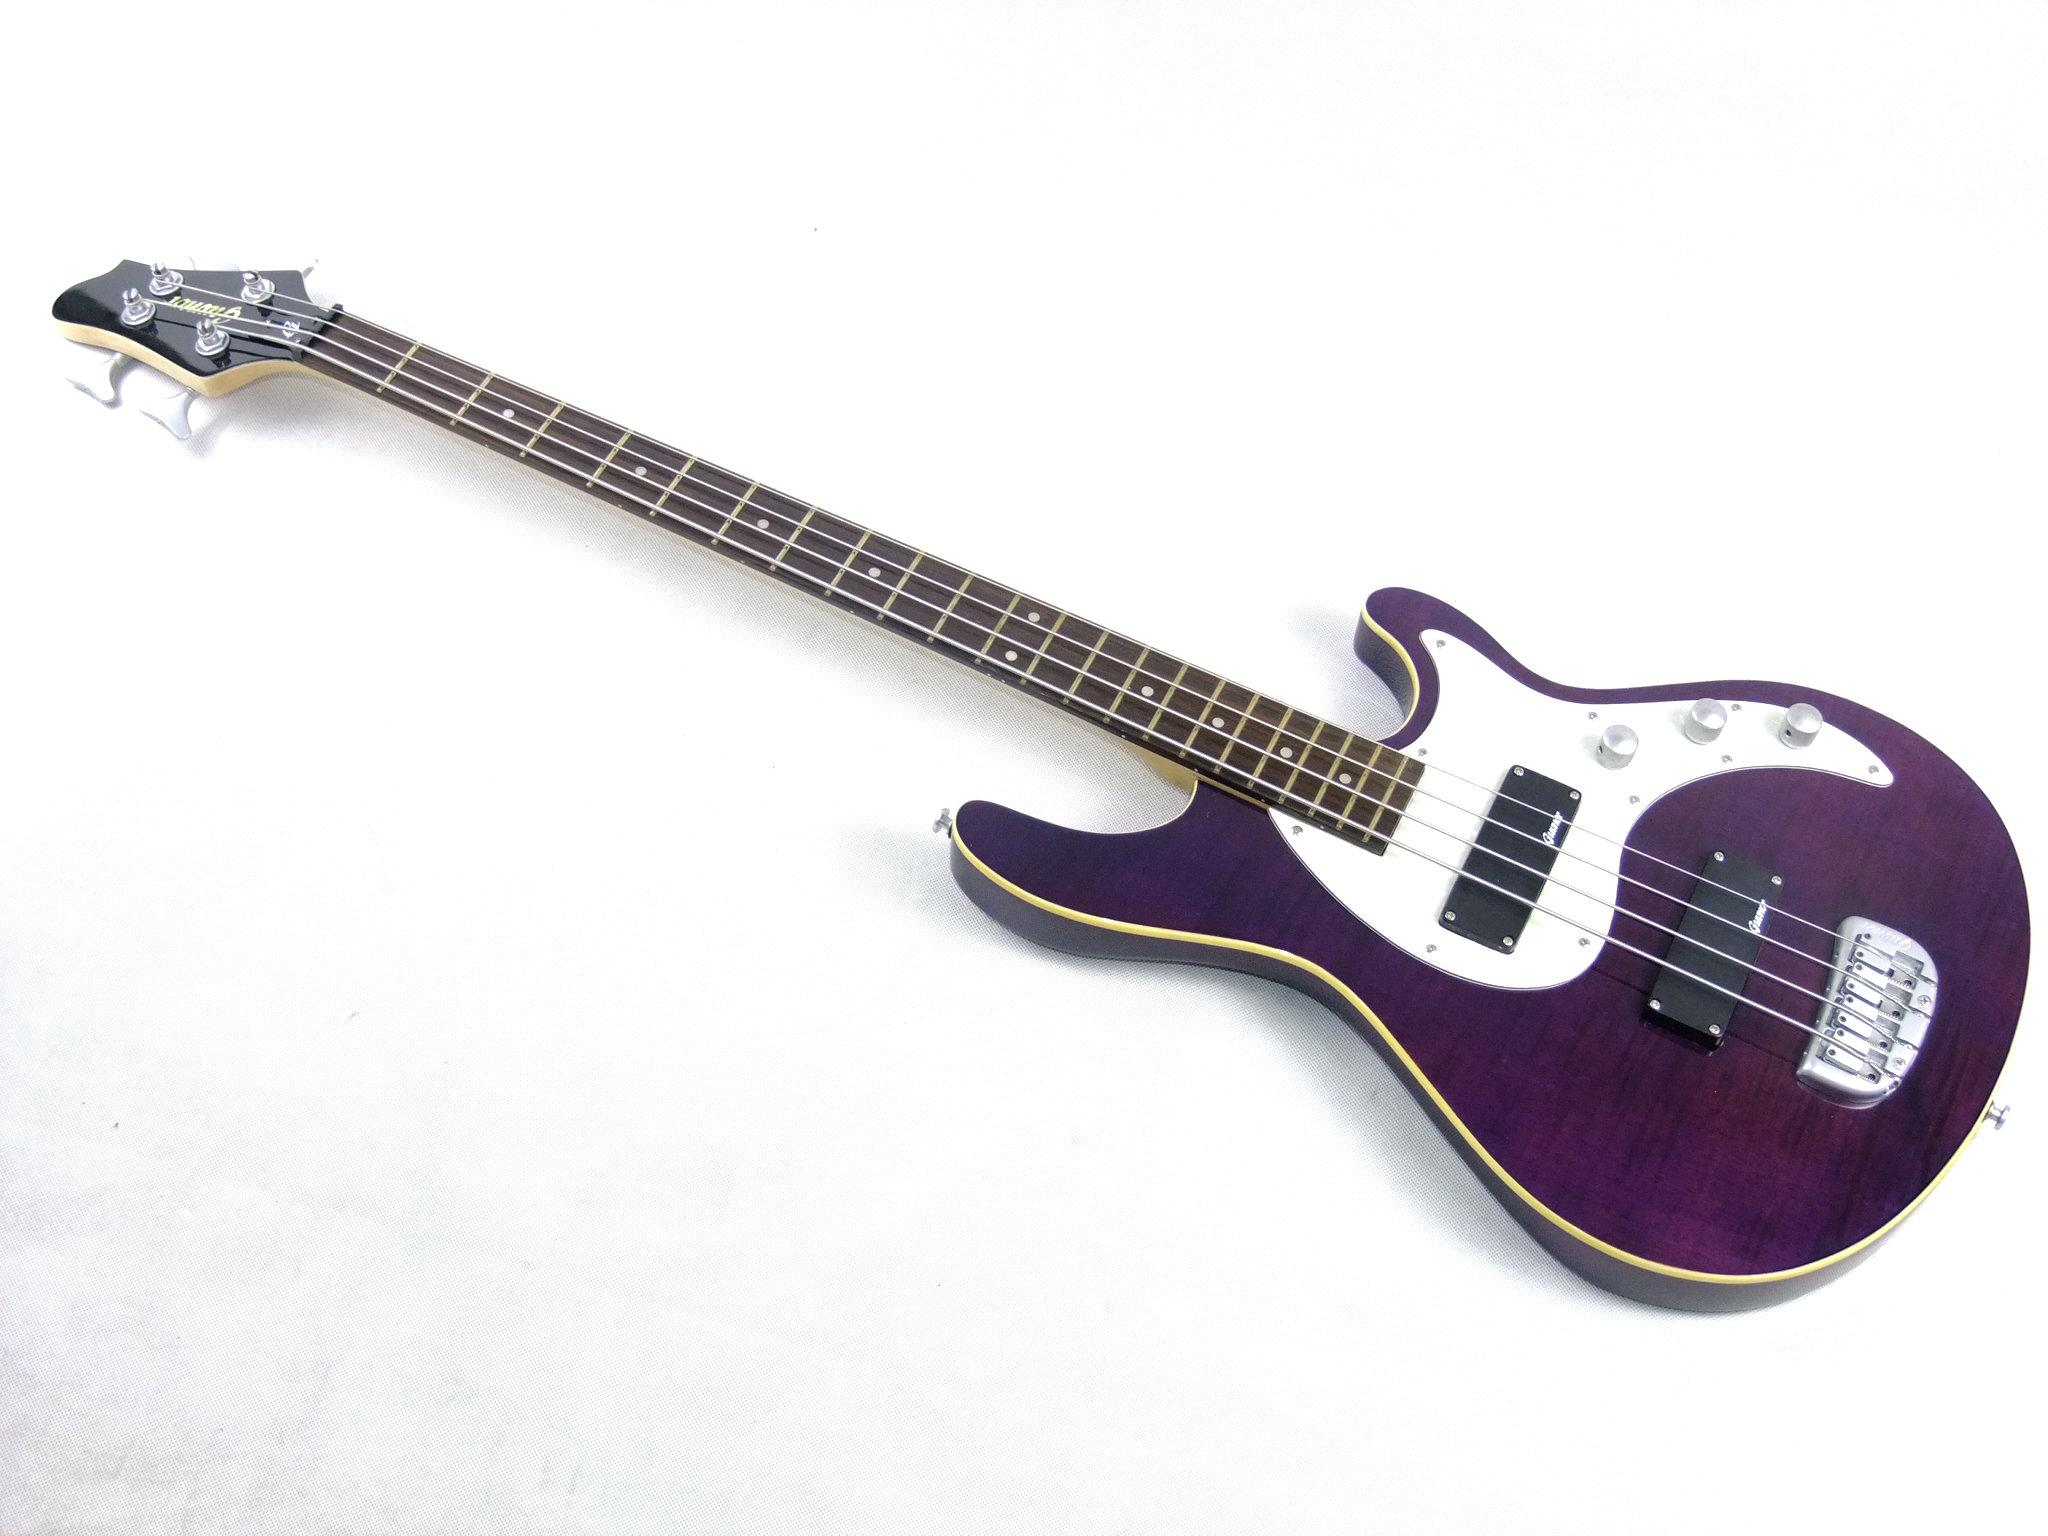 2020 Jingying Music Bass Guitars and Electric Guitars with Custom Brand 18